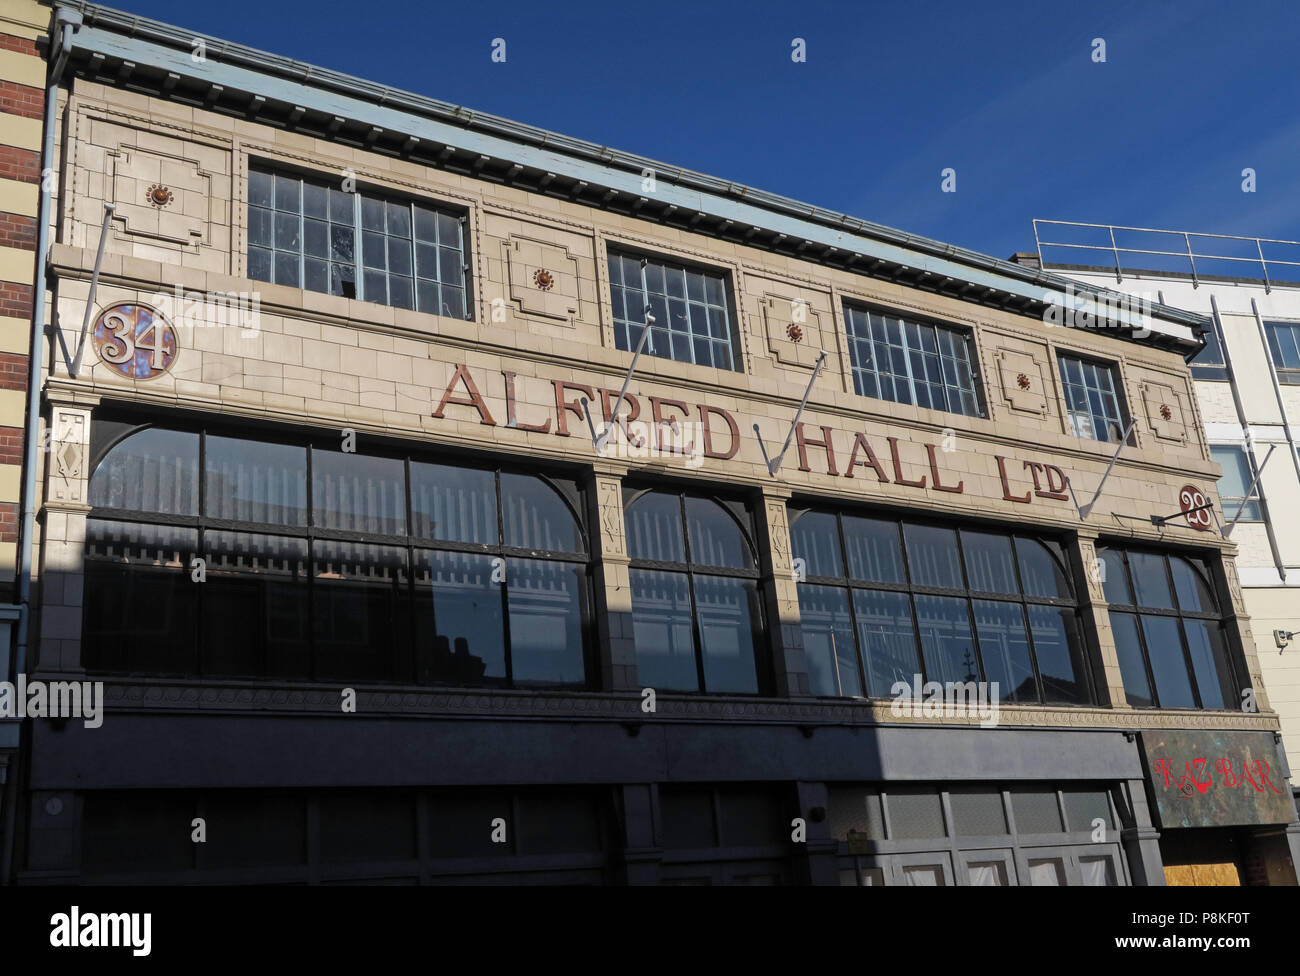 Alfred Hall Ltd building, Silver Street, Doncaster, South Yorkshire, England ,  DN11HT - Stock Image